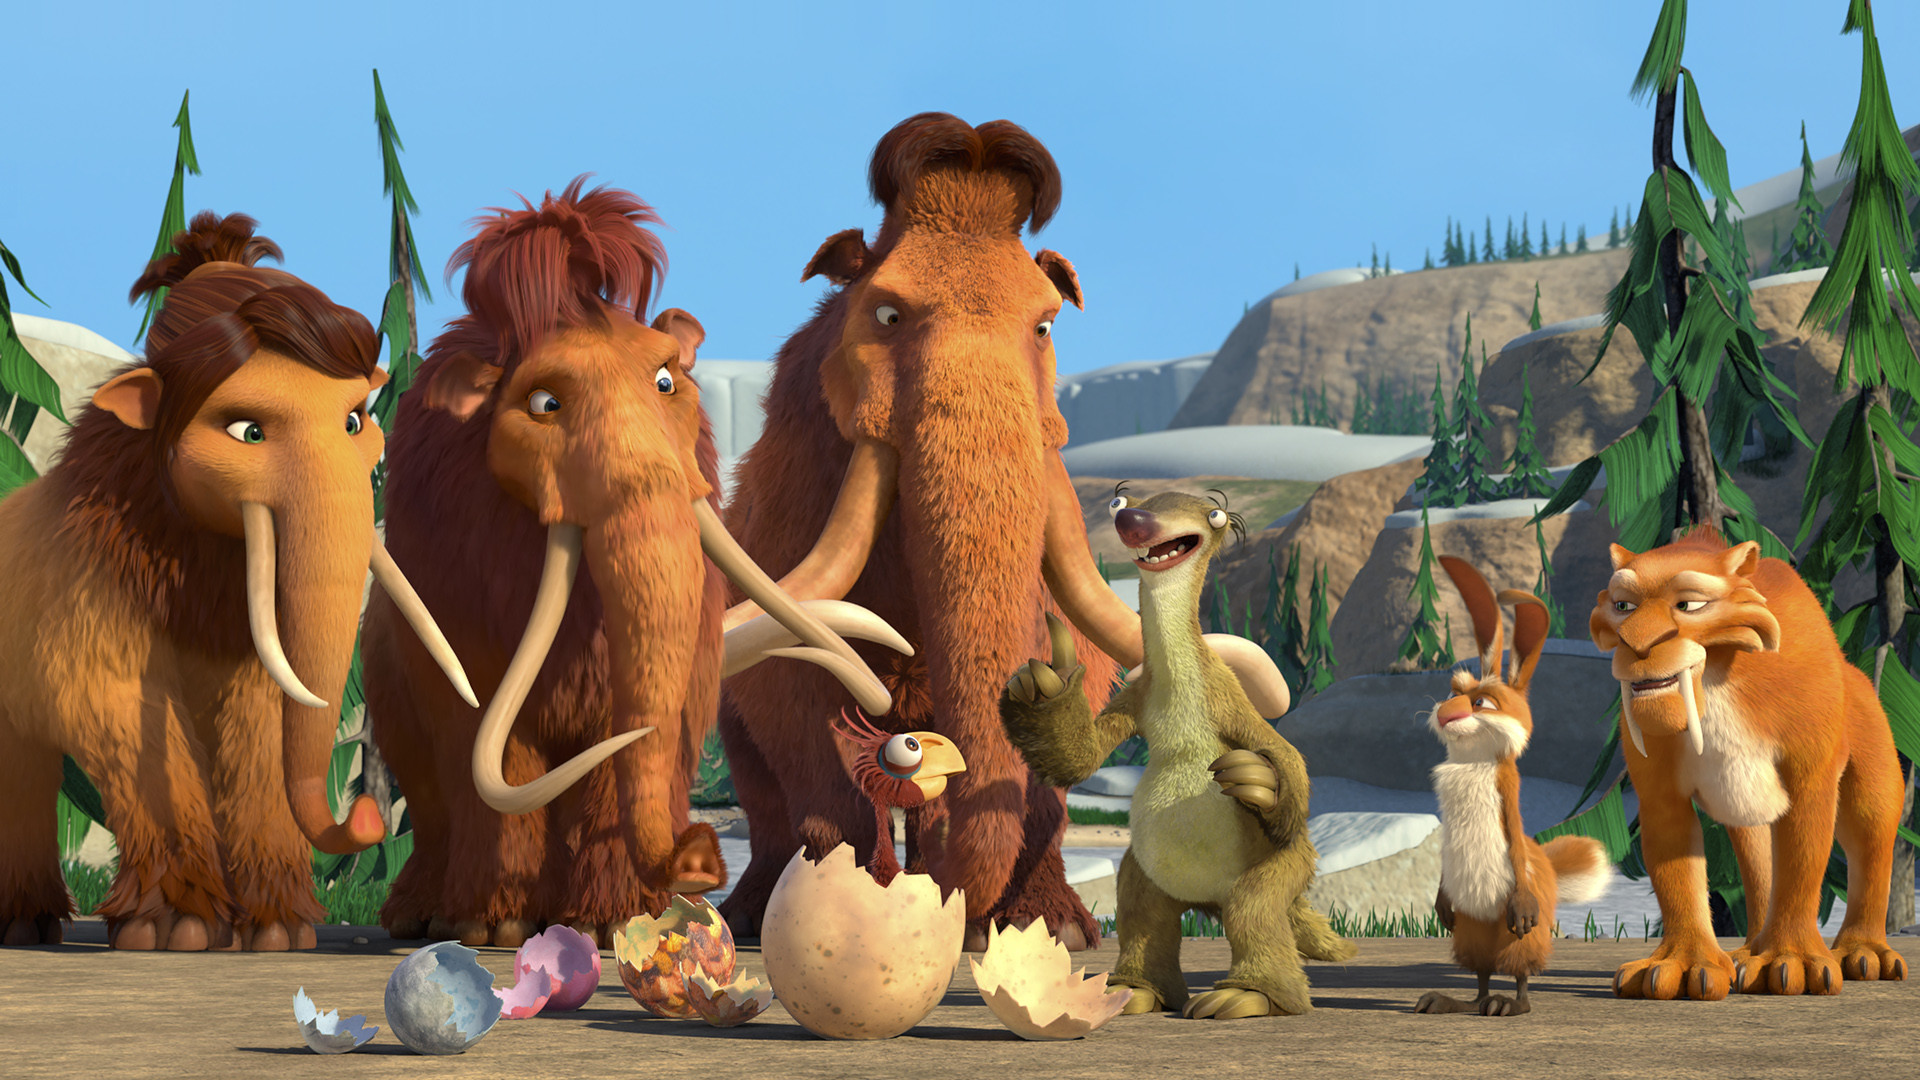 1920x1080 Movie - Ice Age: The Great Egg-Scapade Wallpaper